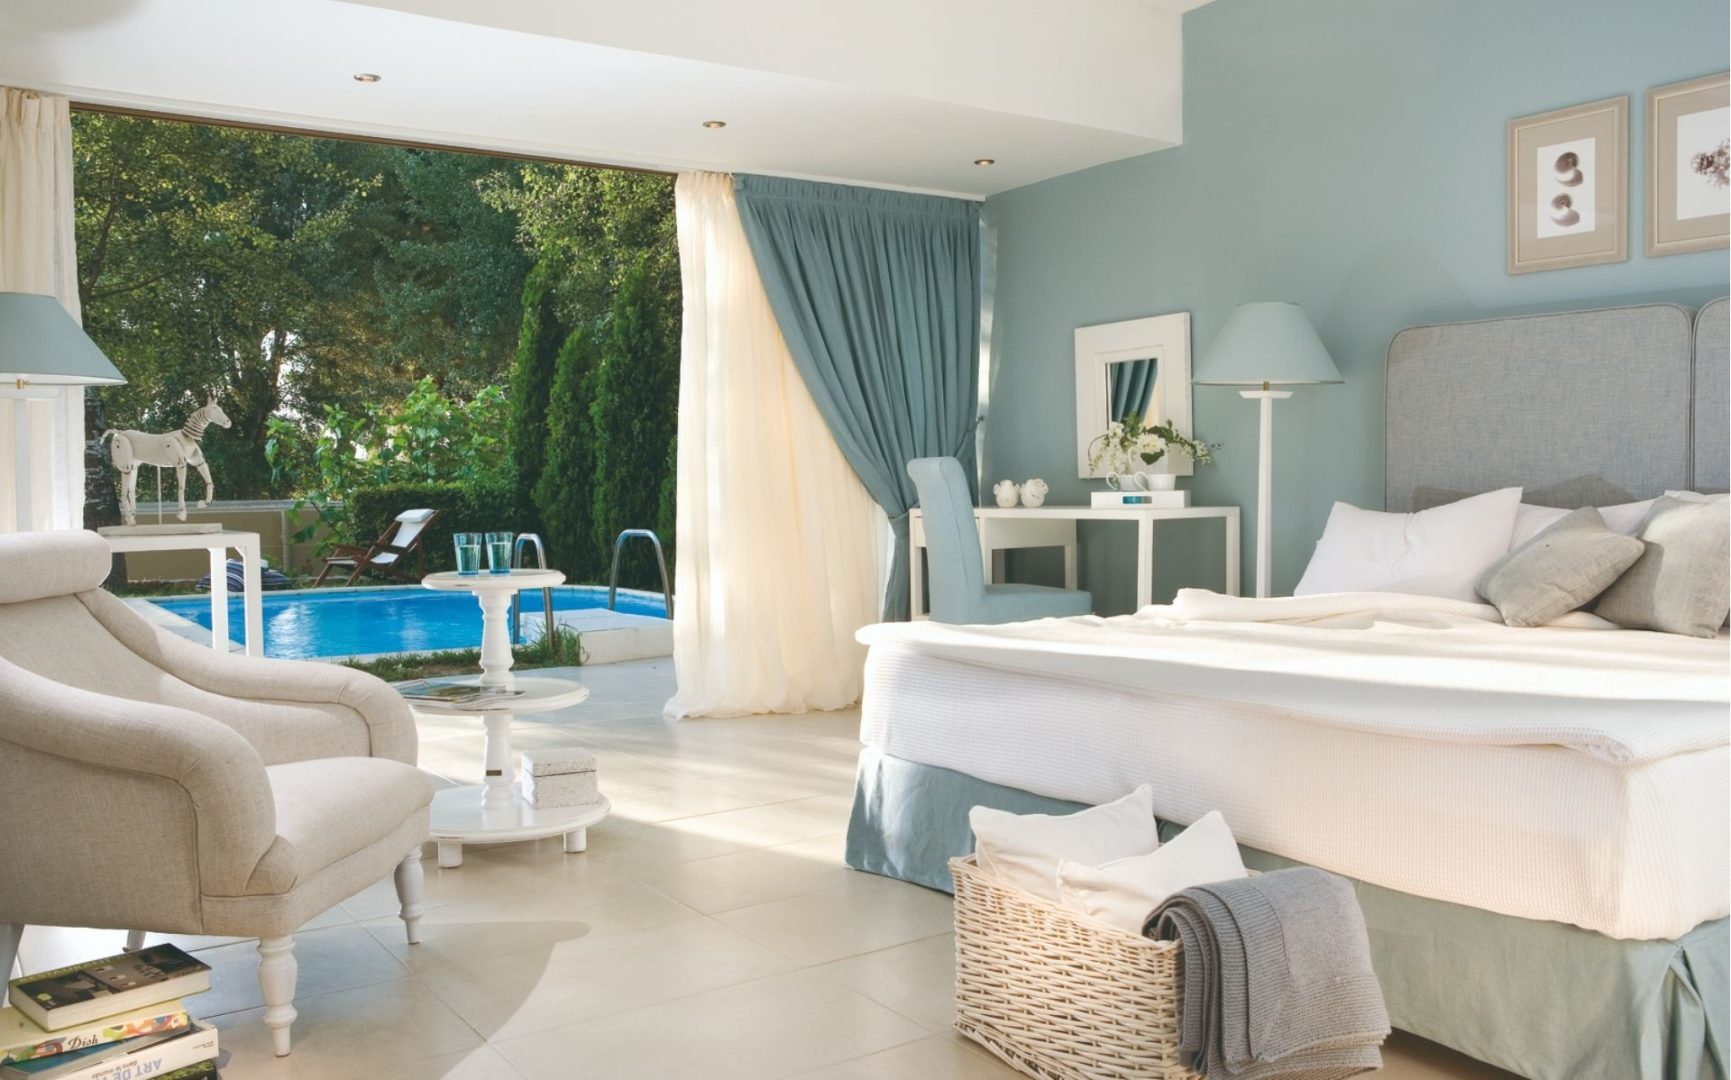 A Junior suite with private pool and garden